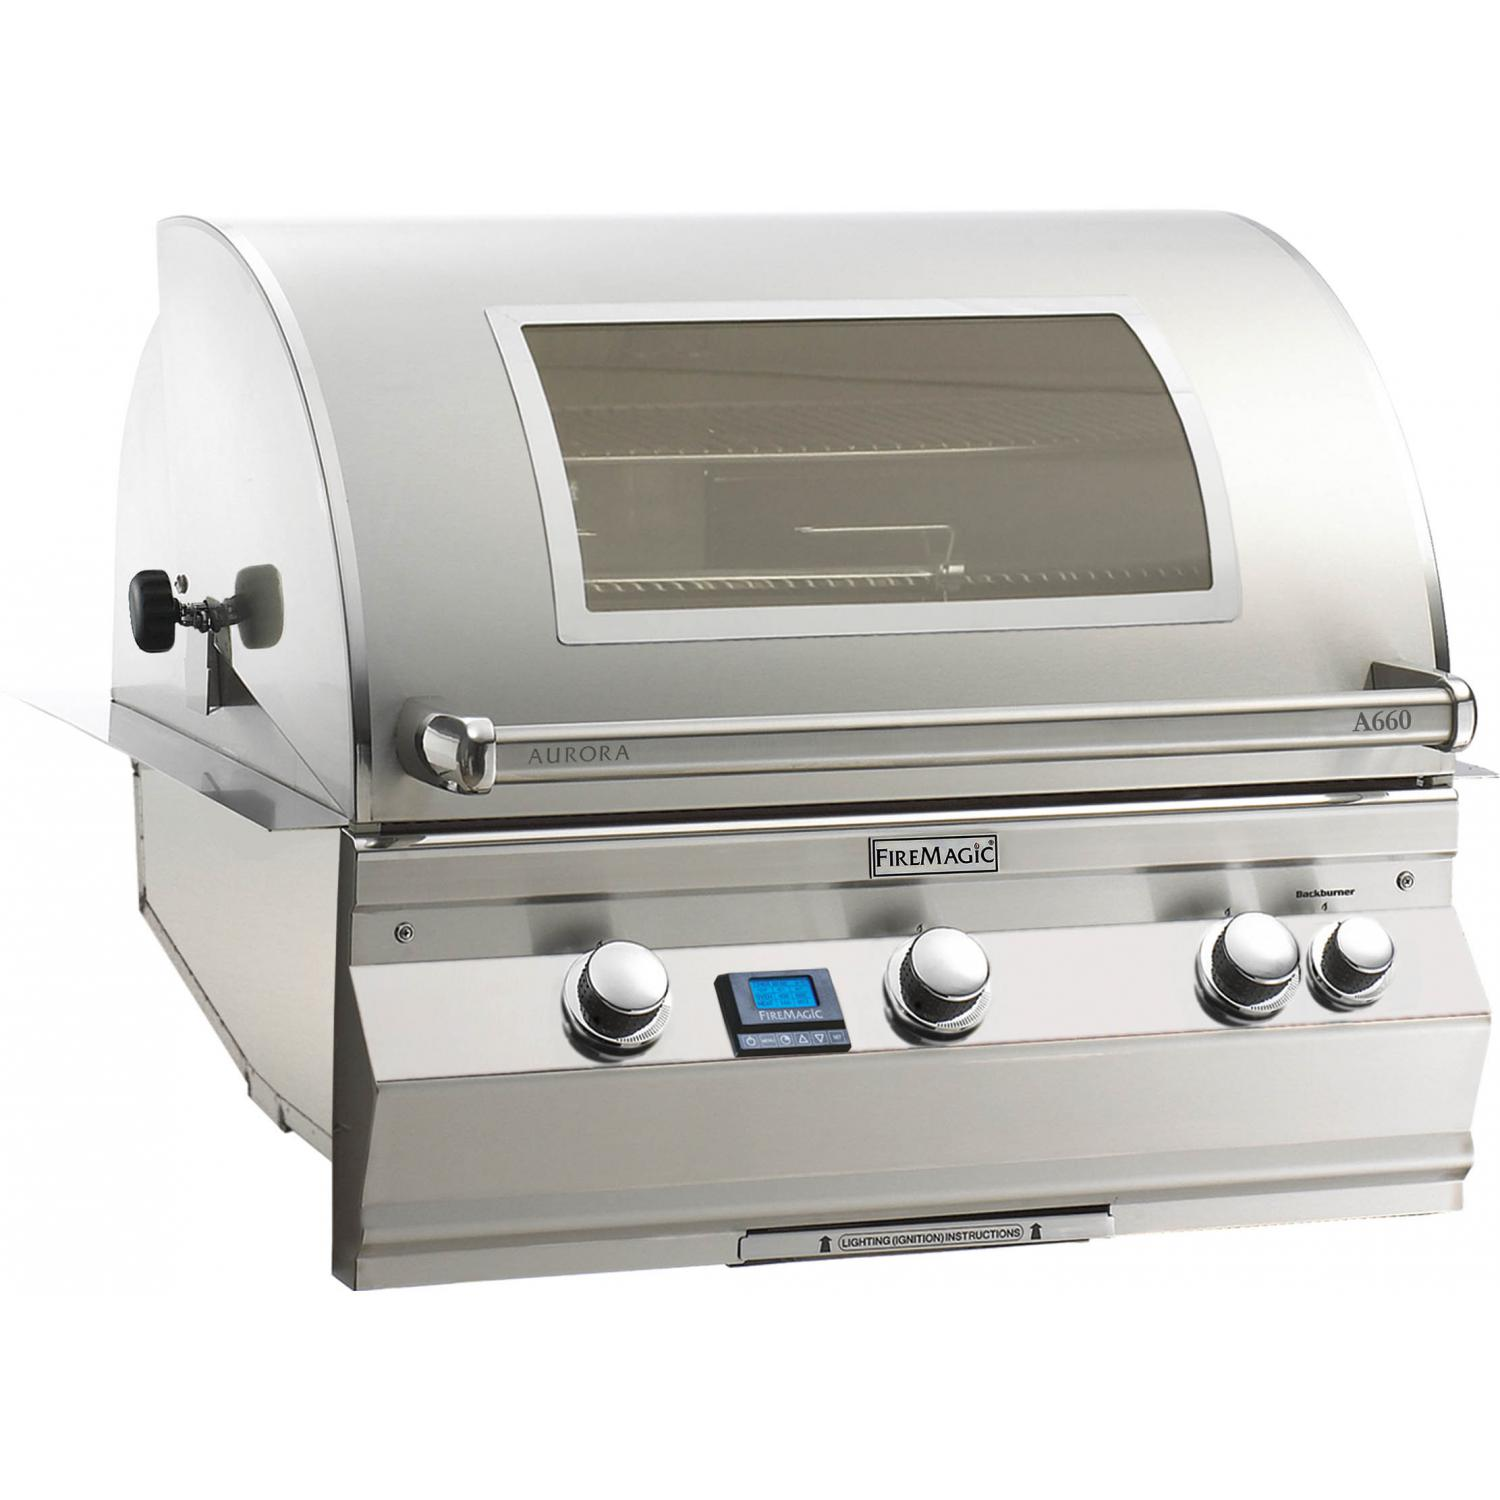 Fire Magic Aurora A660i Built-In Natural Gas Grill With Rotisserie And Magic View Window - A660i-6E1N-W 2894034